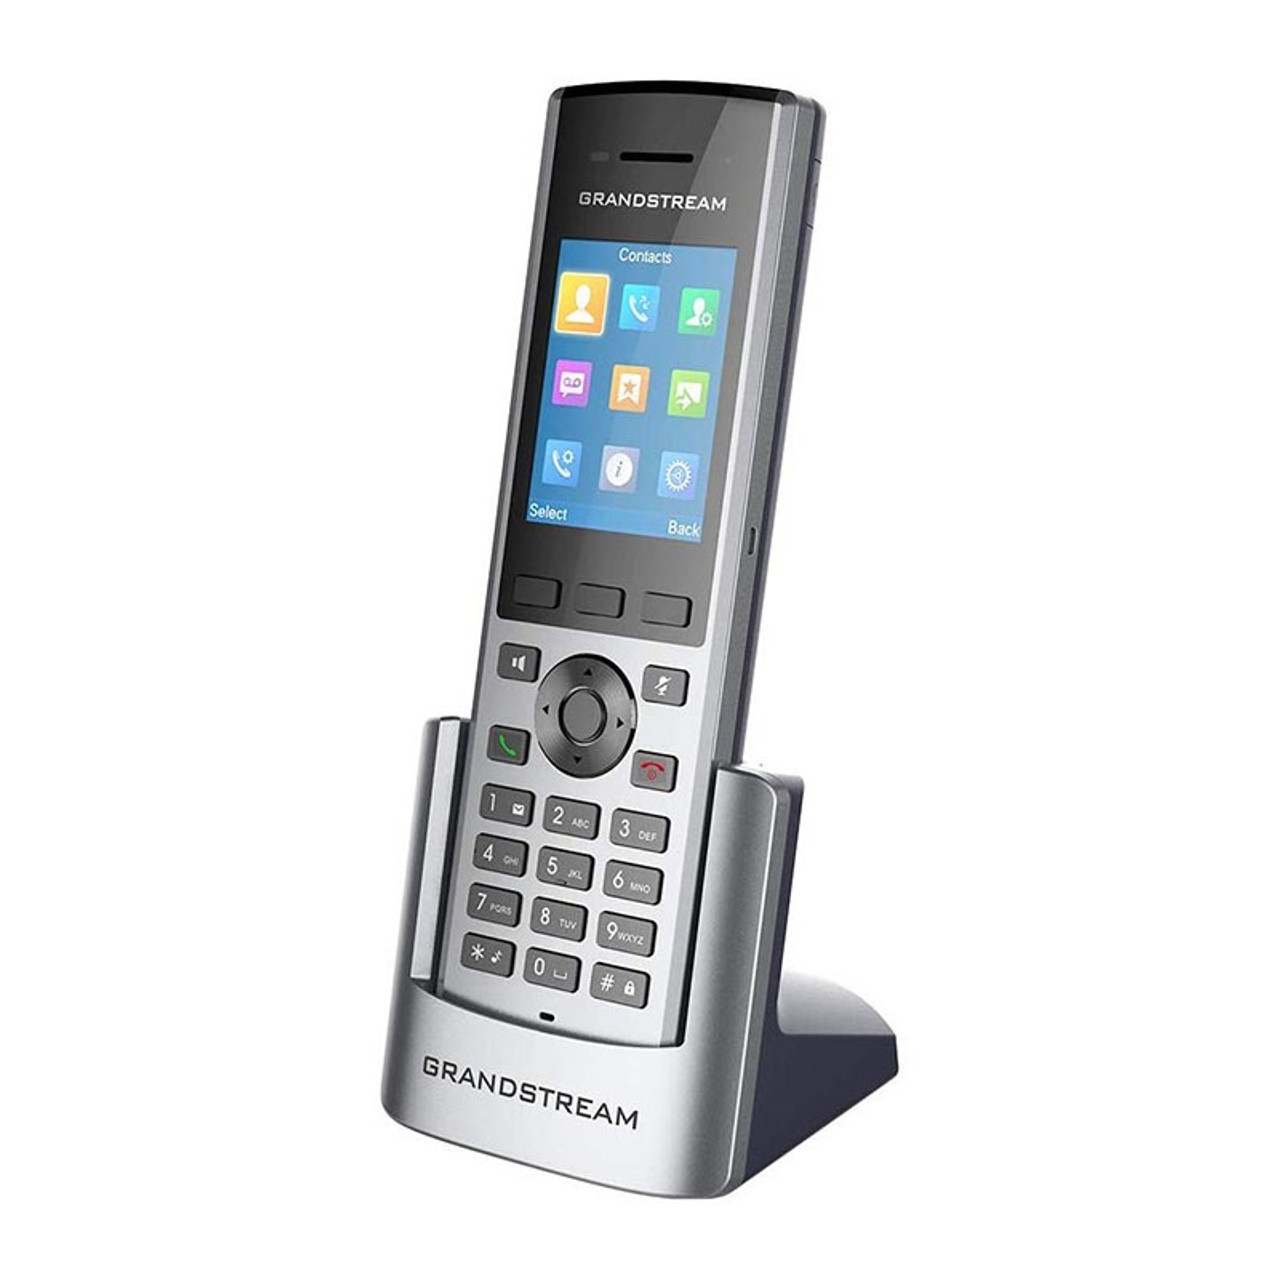 Image for Grandstream DP730 DECT Cordless IP Phone CX Computer Superstore